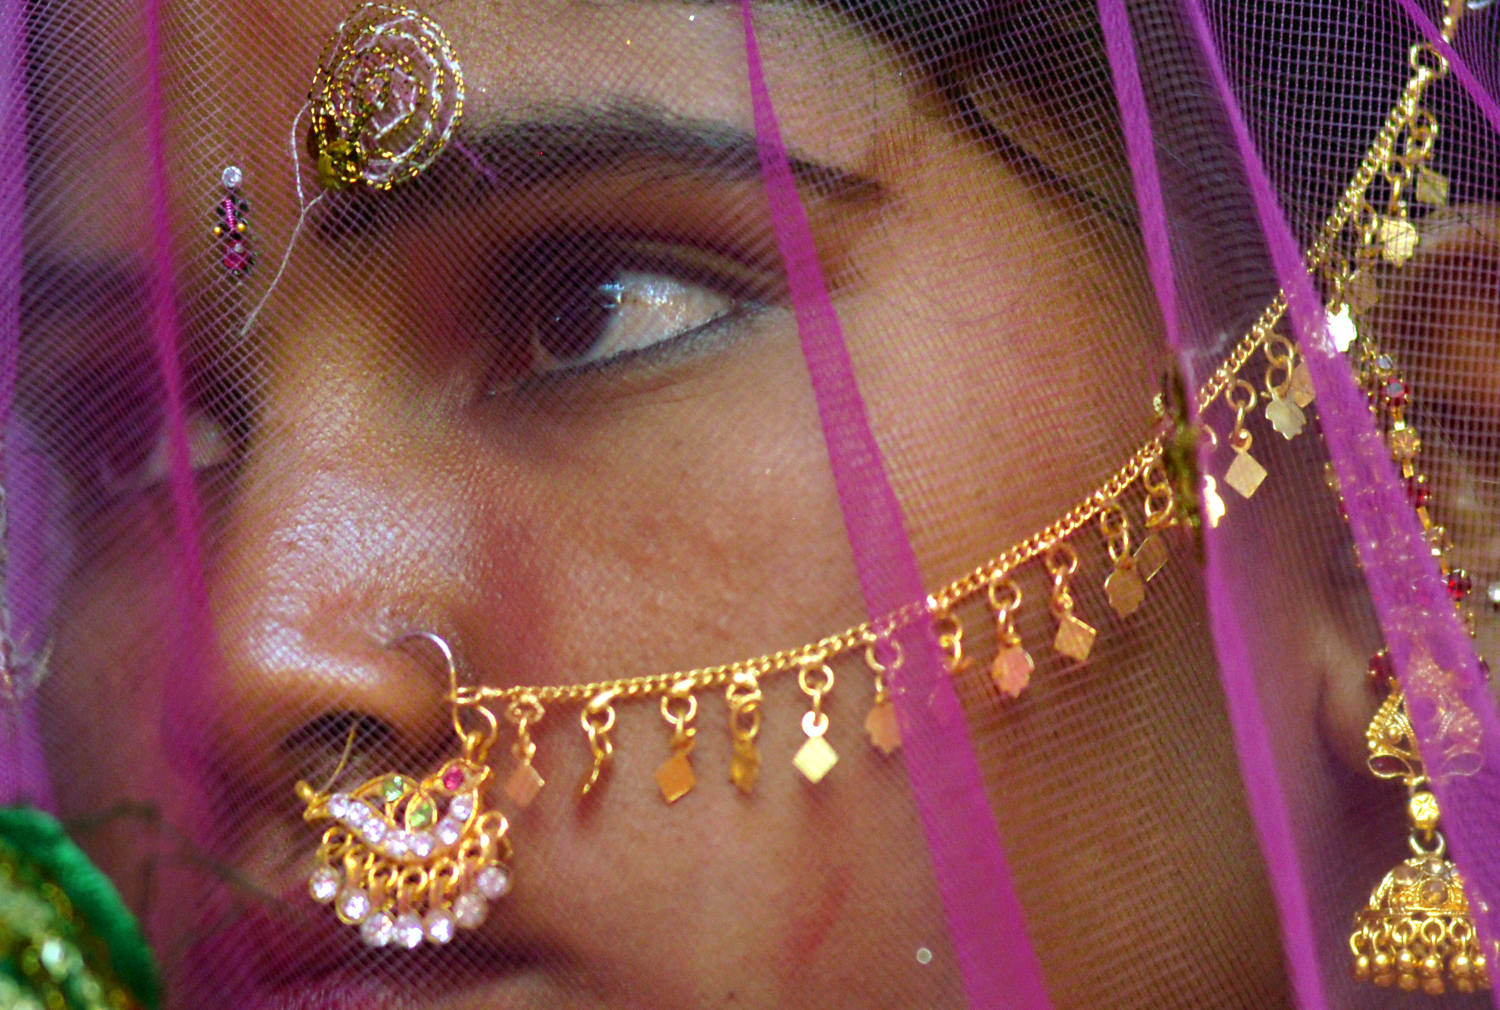 Jharkhand Releases Action Plan to End Child Marriage